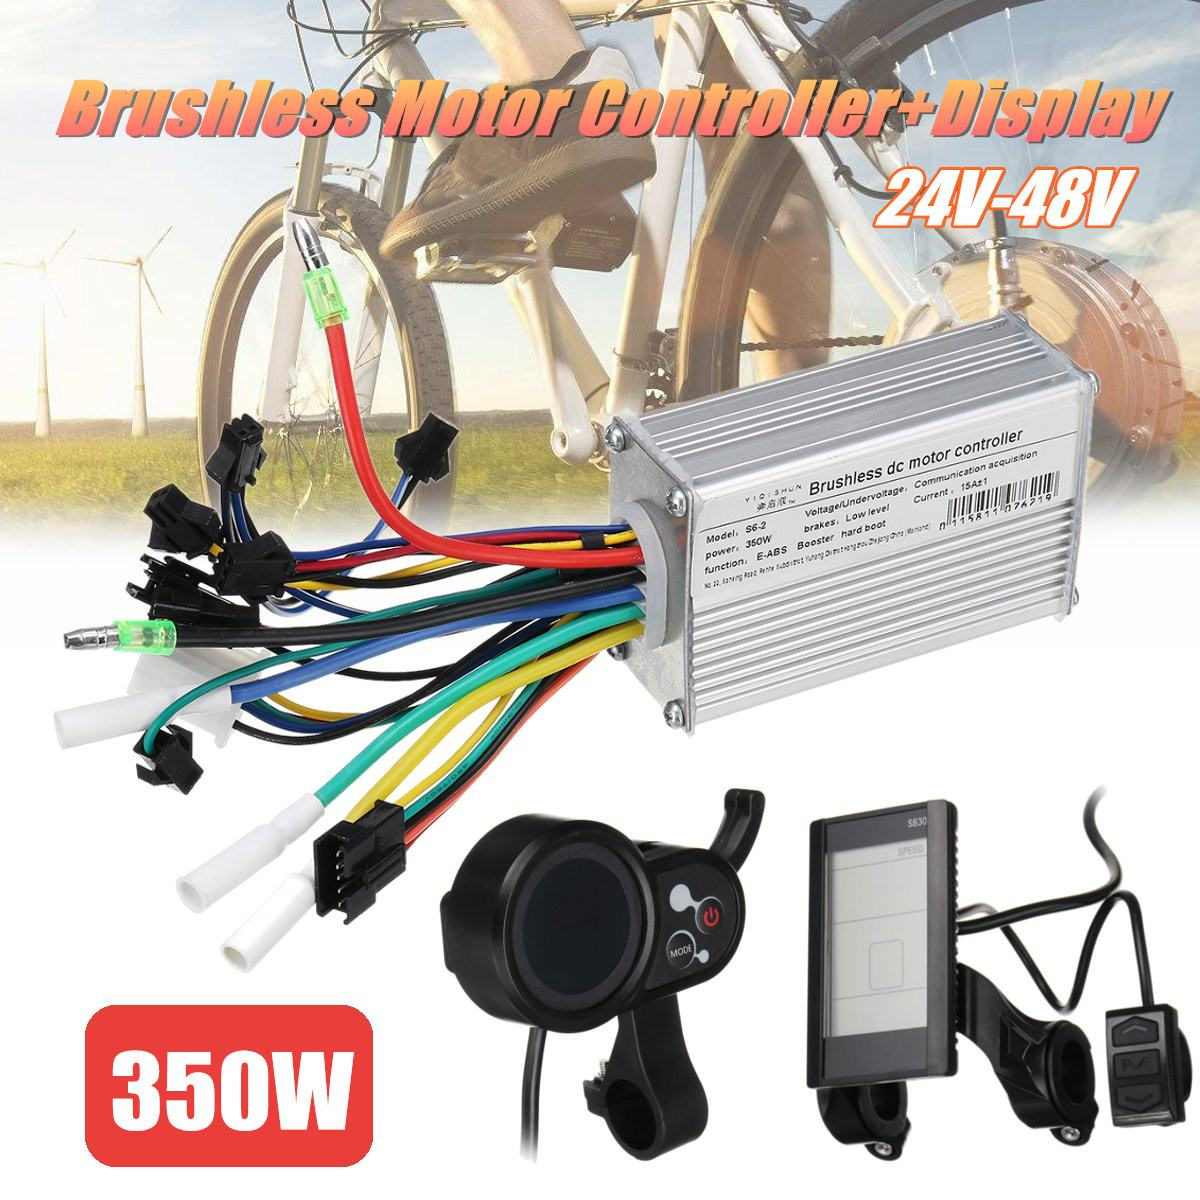 350W 24V 48V Brushless Motor Control unit  LCD/Smart Display For Scooter E Bike Electric Bicycle Accessories|Electric Bicycle Accessories| |  - title=